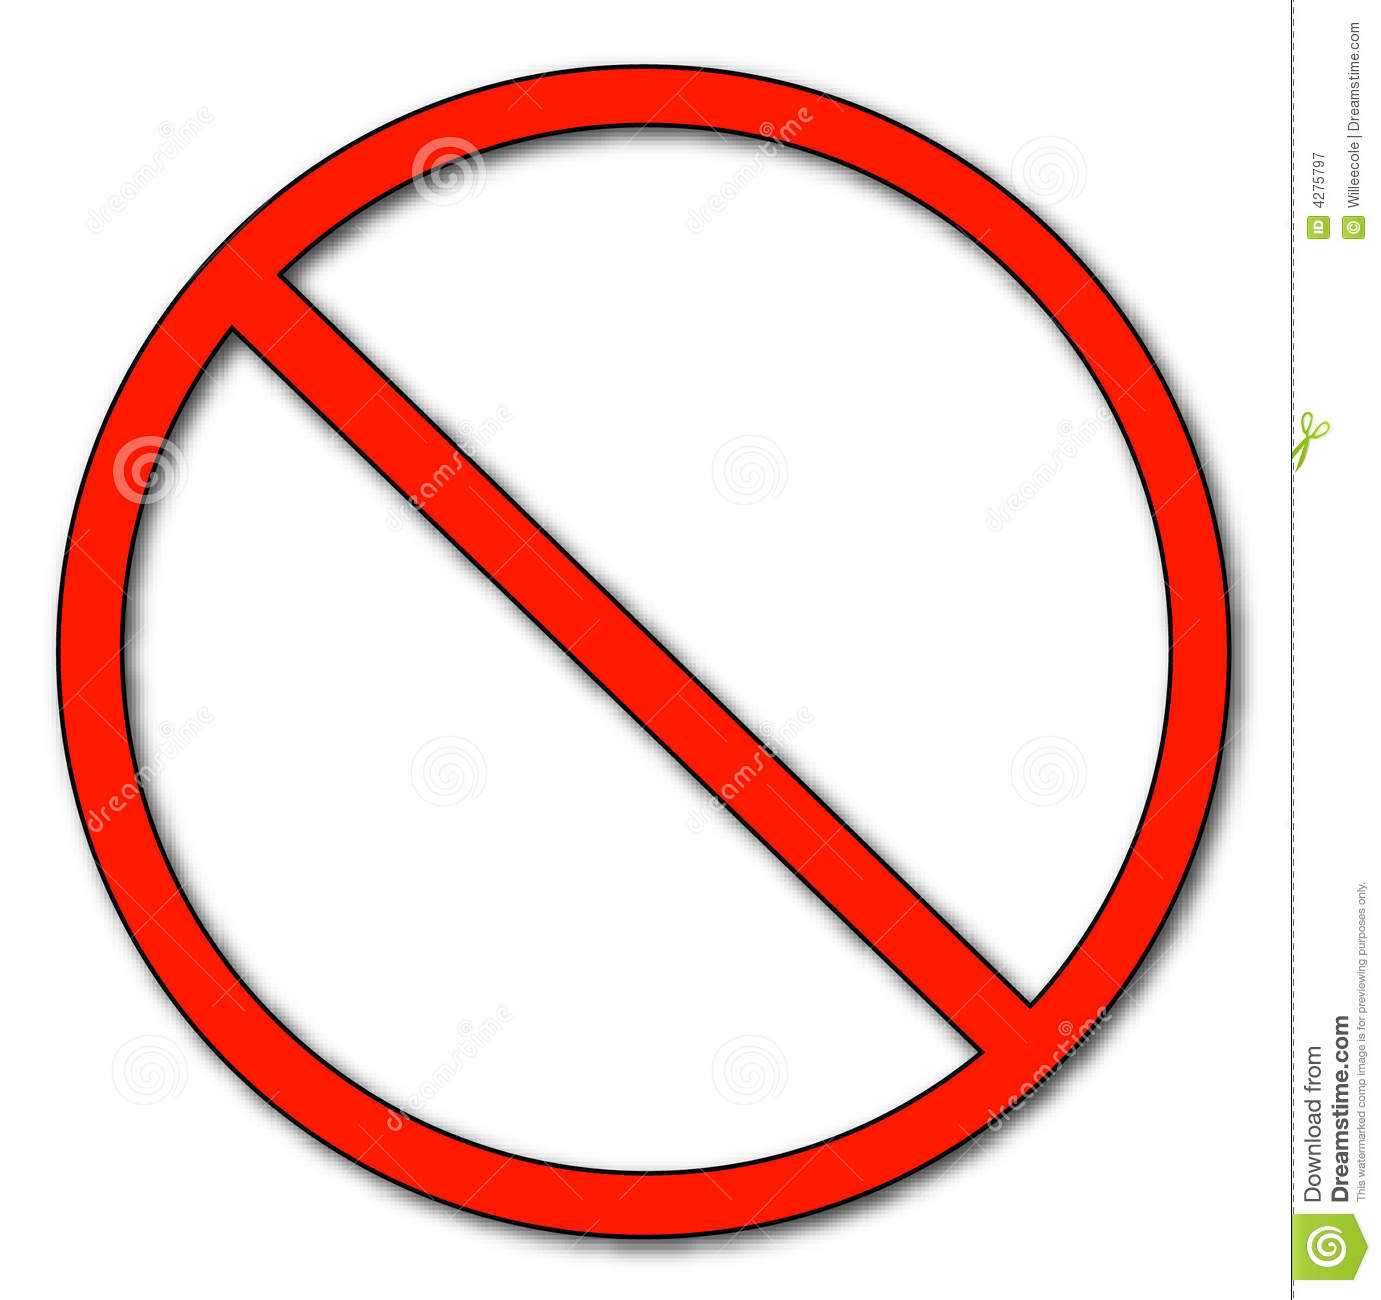 Not Allowed Symbol Royalty Free Stock Photography - Image: 4275797